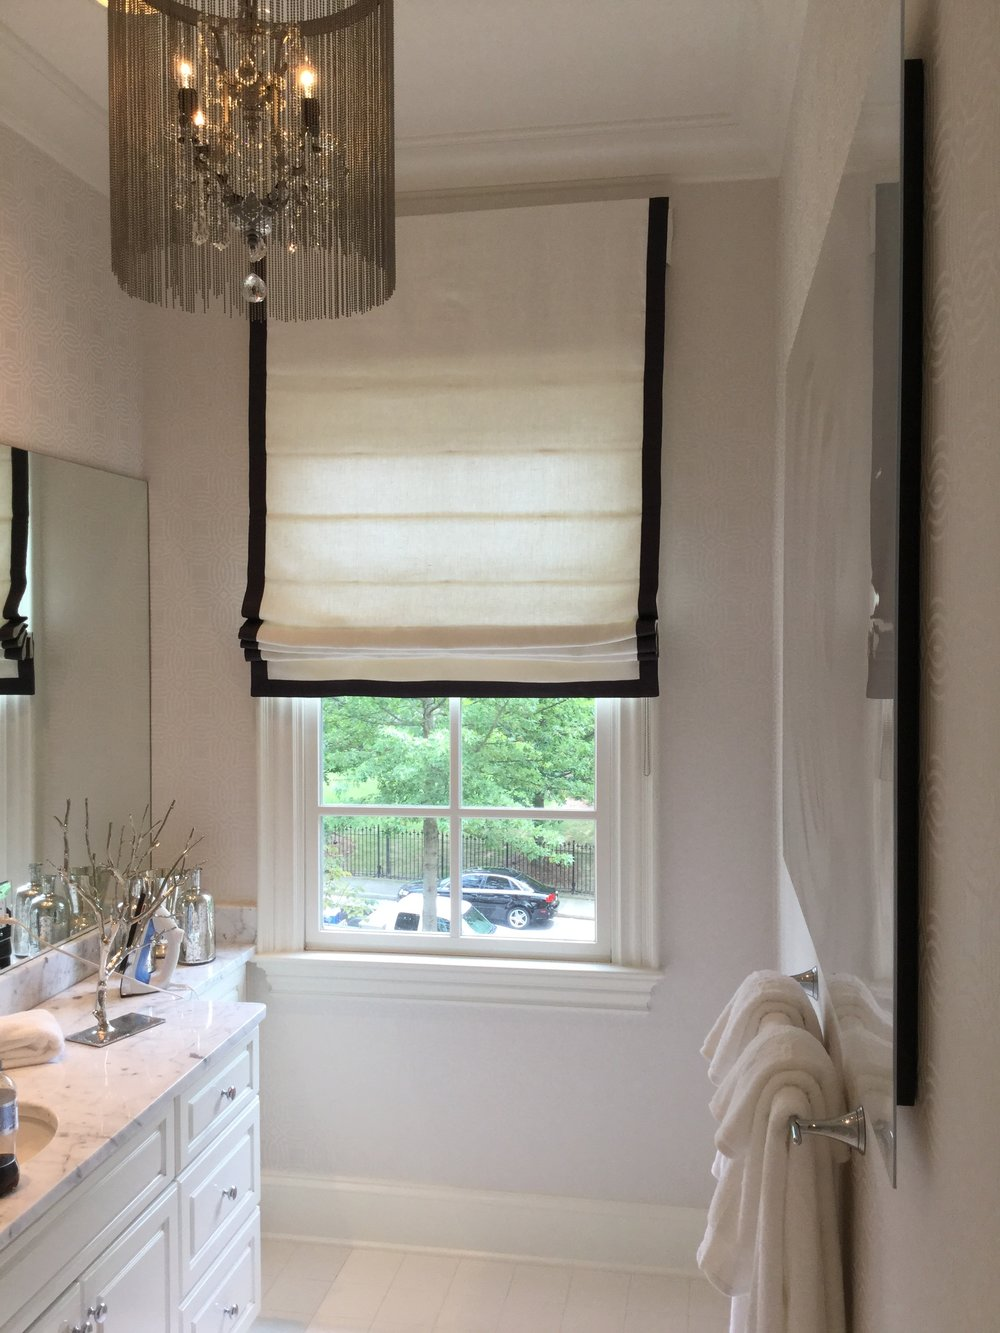 Roman Shades are offered in several styles- Classic, Relaxed and tucked. There are also different lift options. Ask your D98 representative for more details.